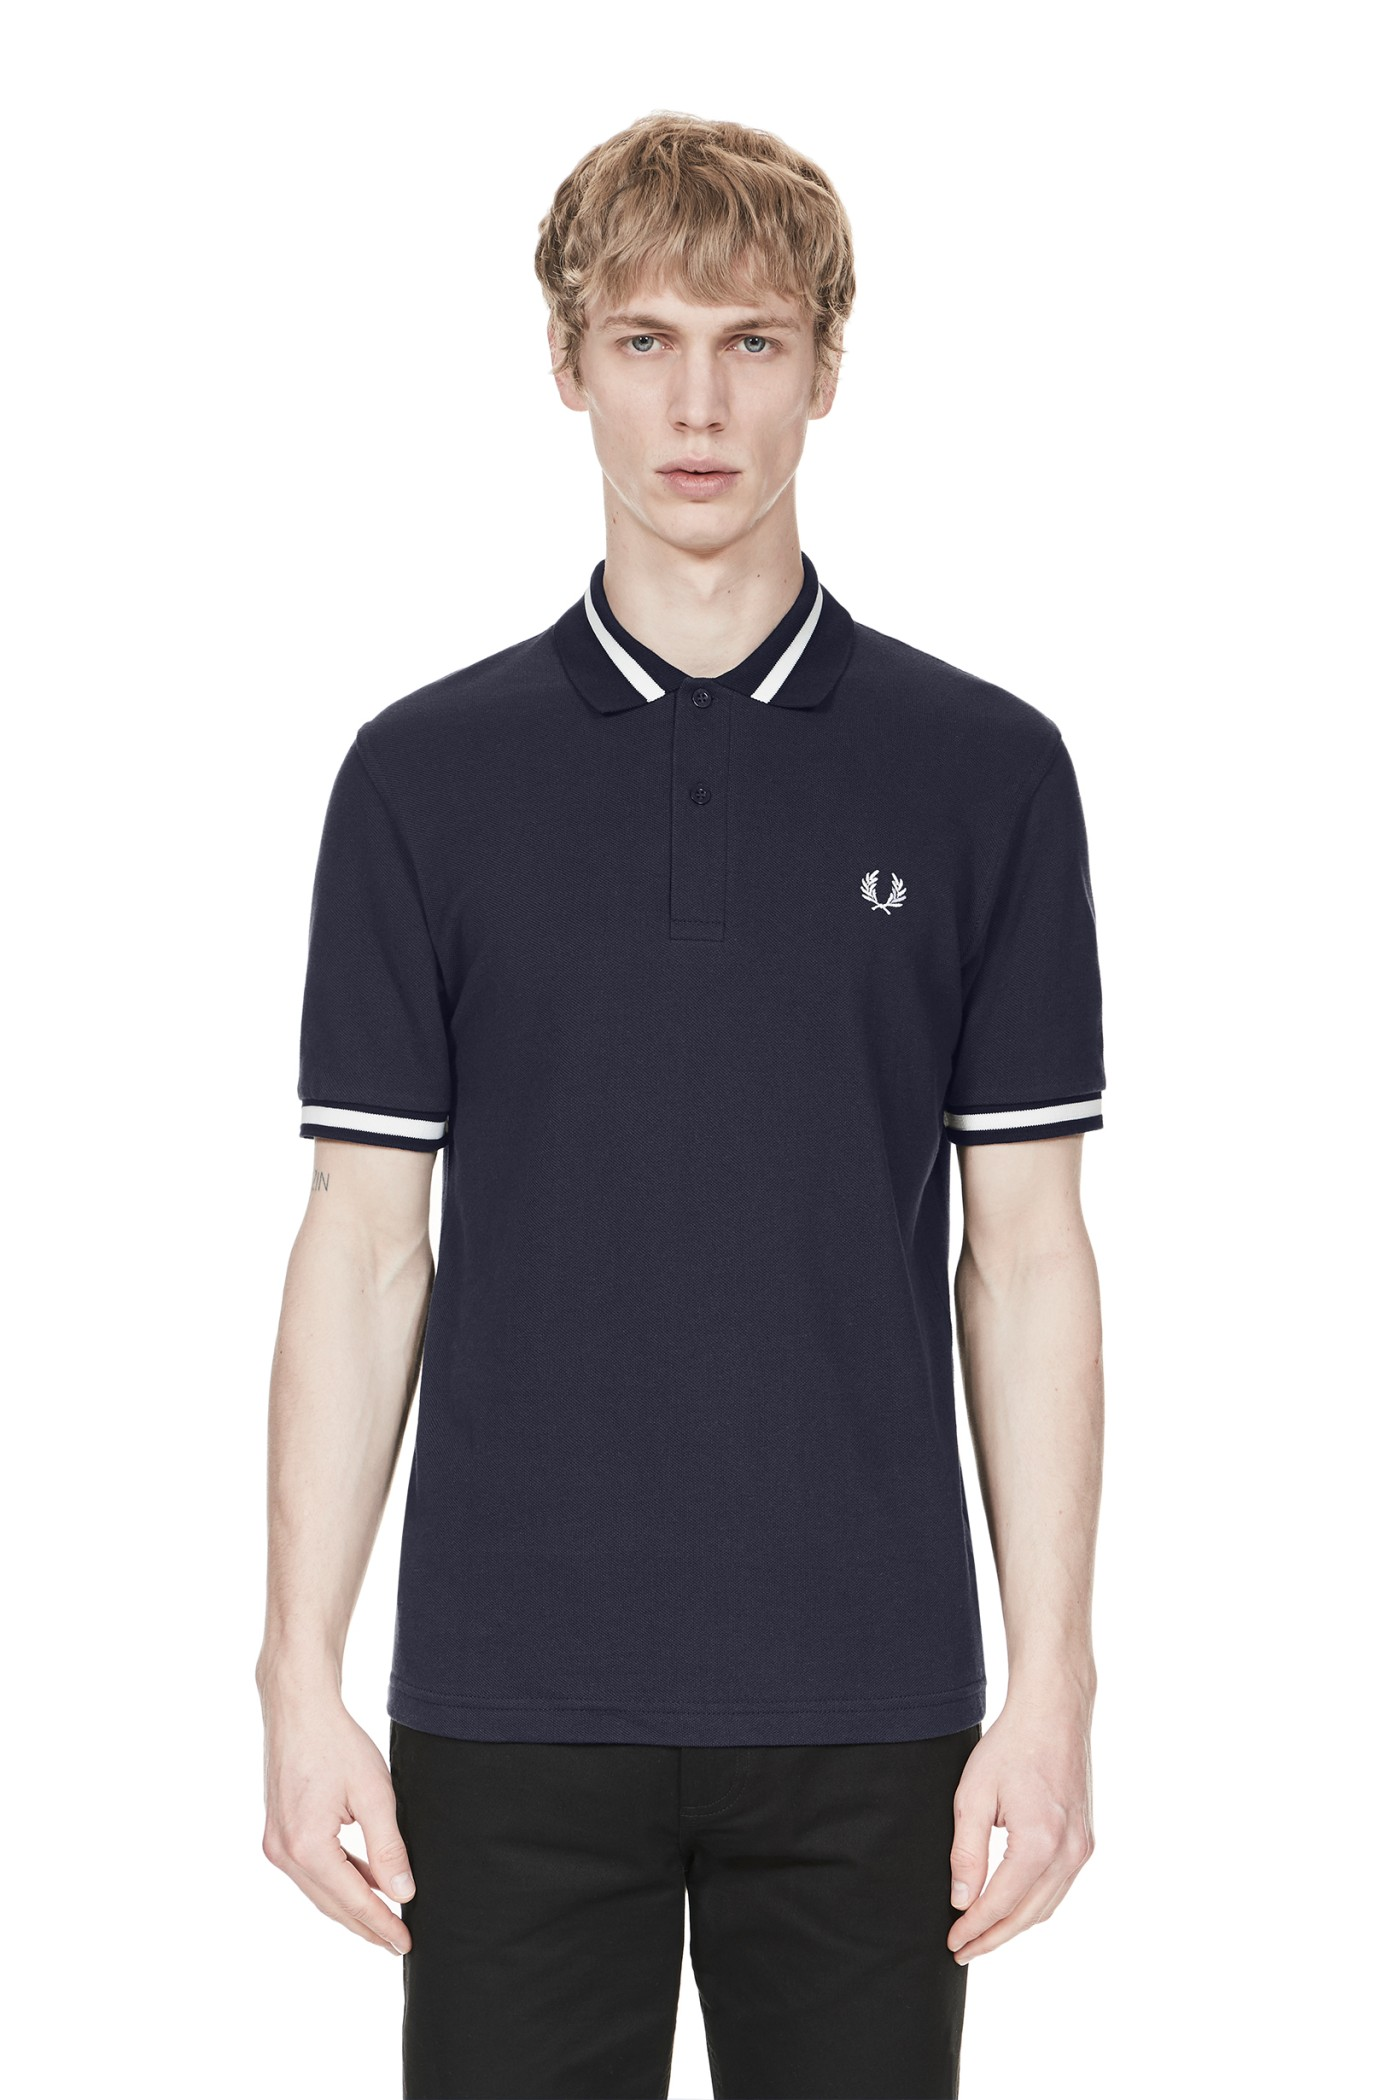 Fred Perry - Single Tipped Fred Perry Shirt Navy / Snow